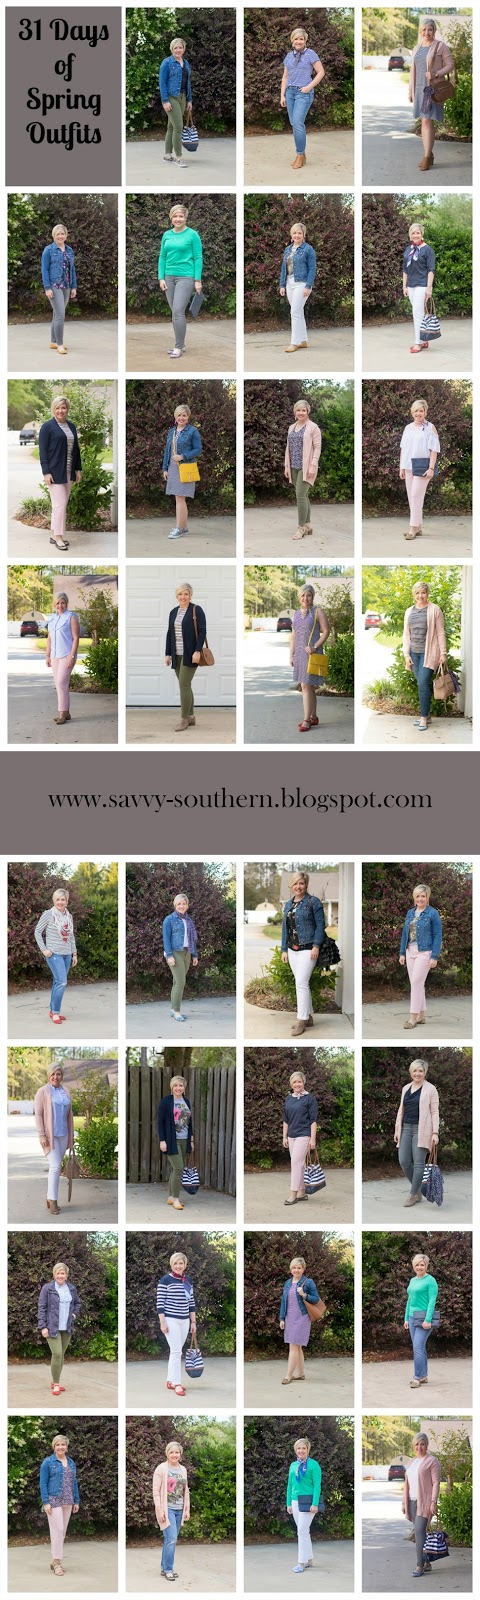 31 days of spring outfits